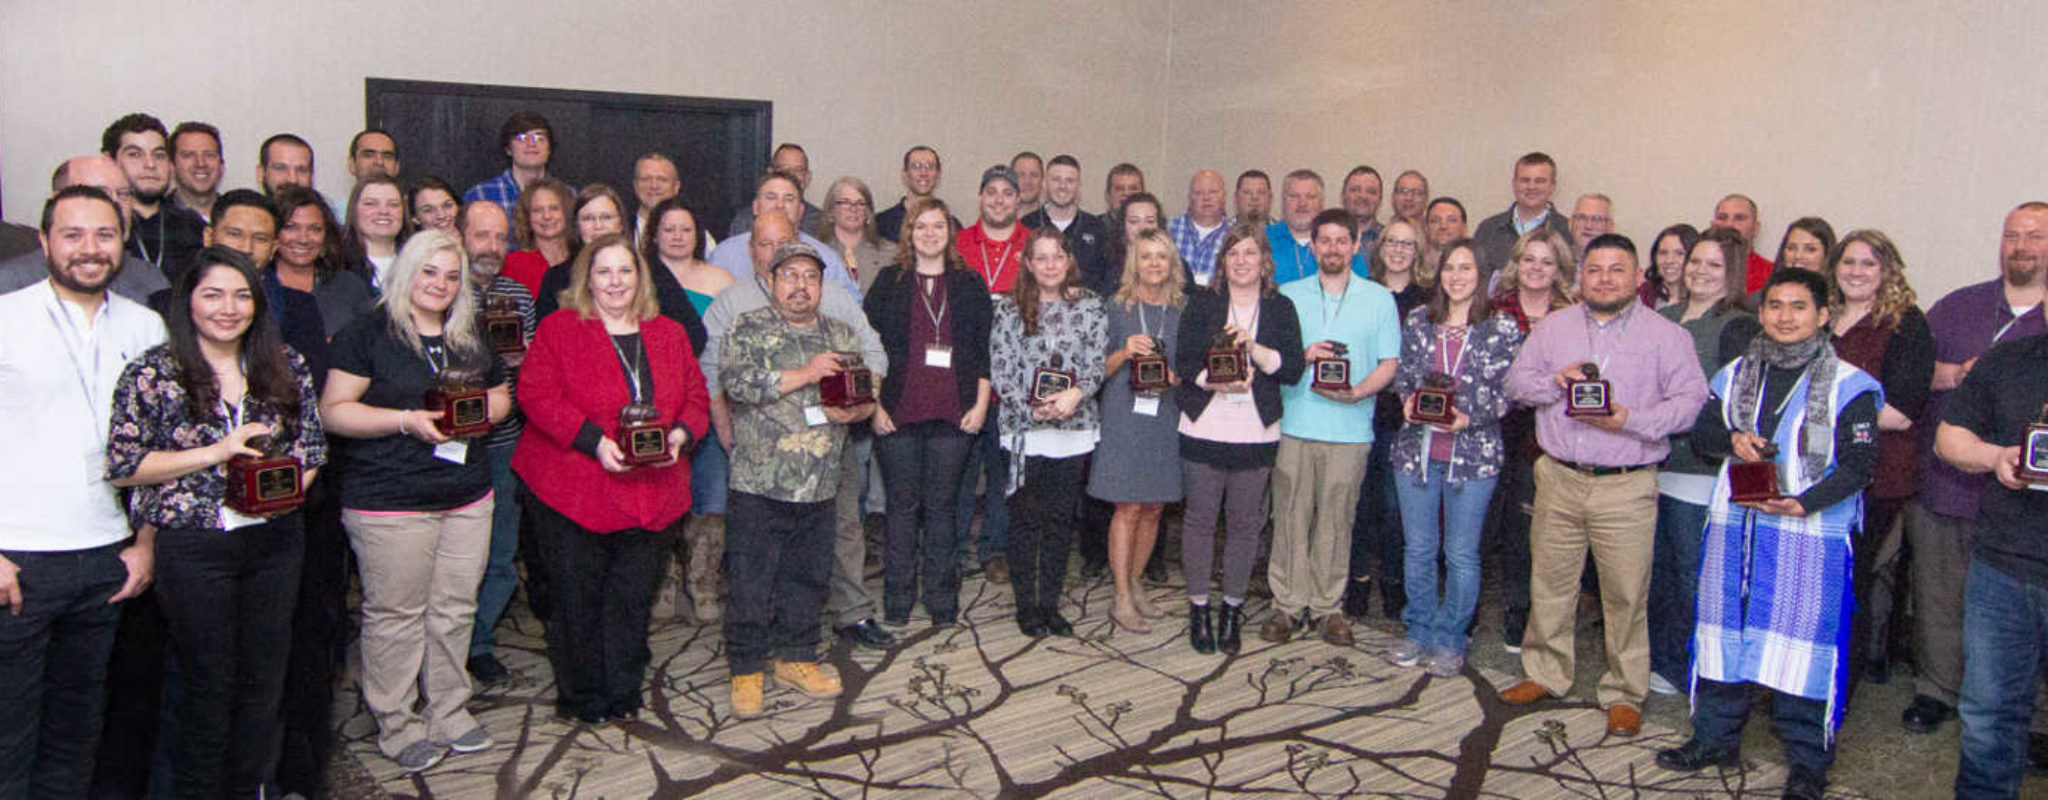 Christensen Farms hosts its 5th annual organizational awards event